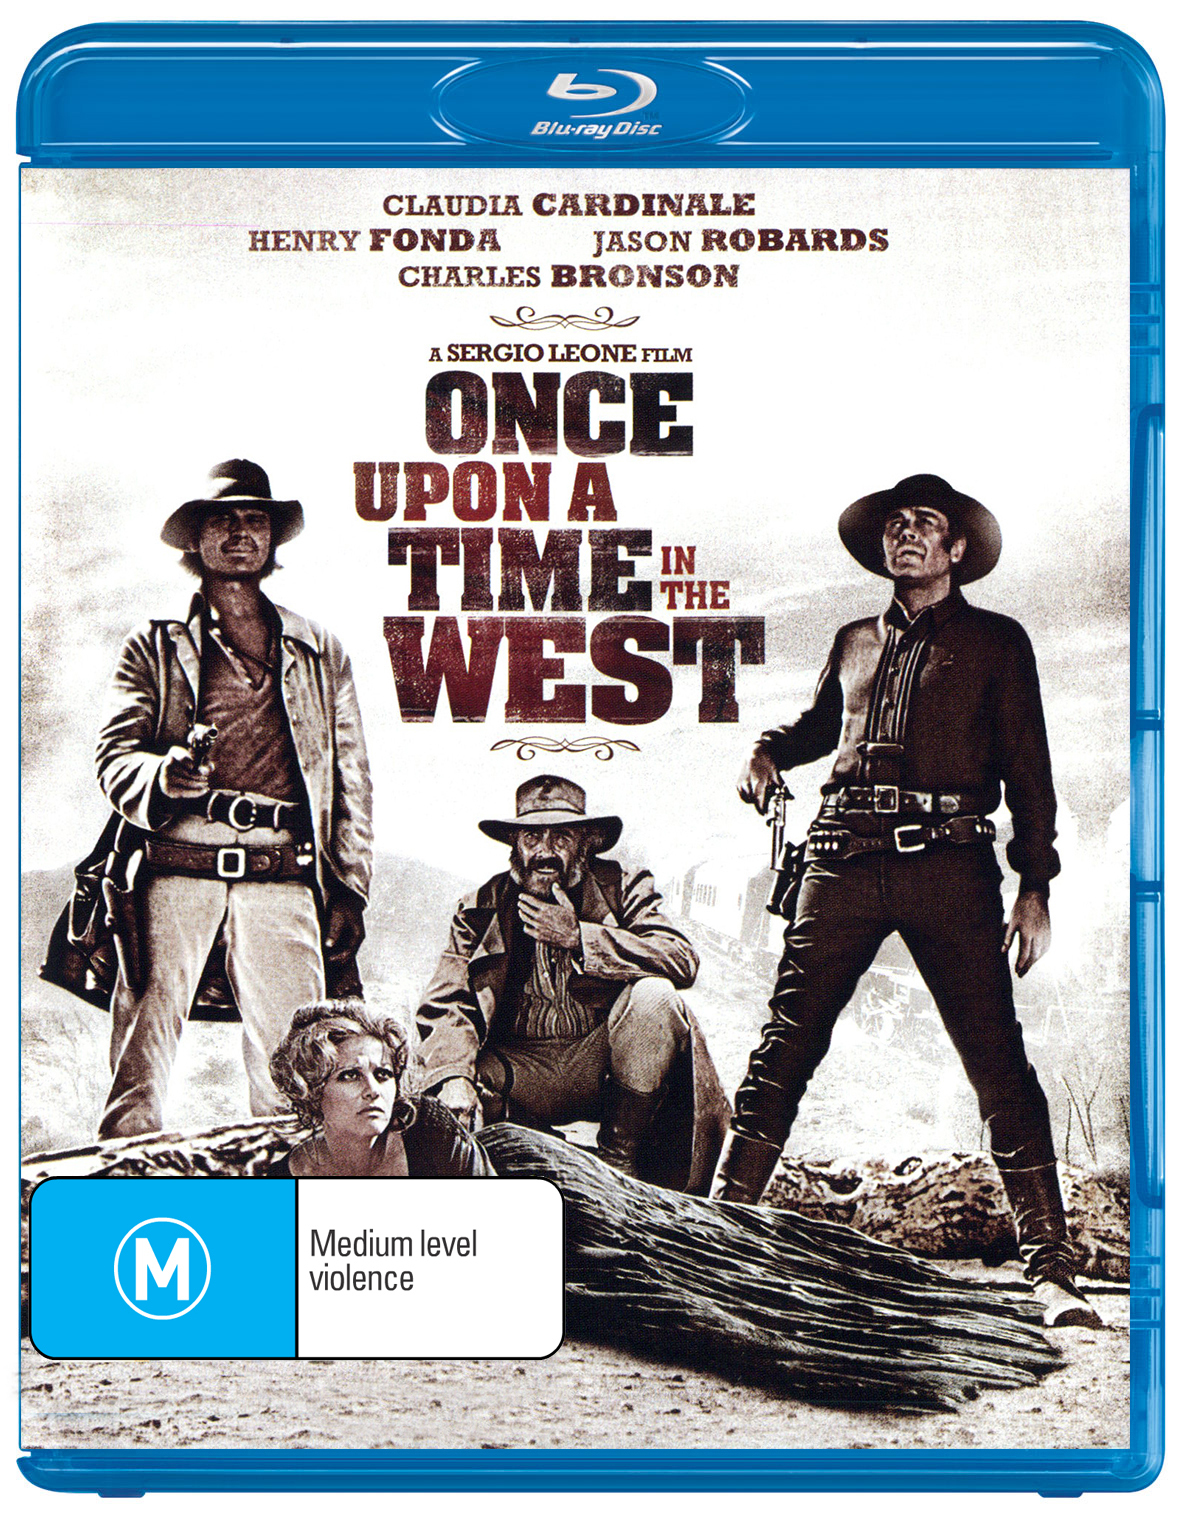 Once Upon A Time In The West on Blu-ray image